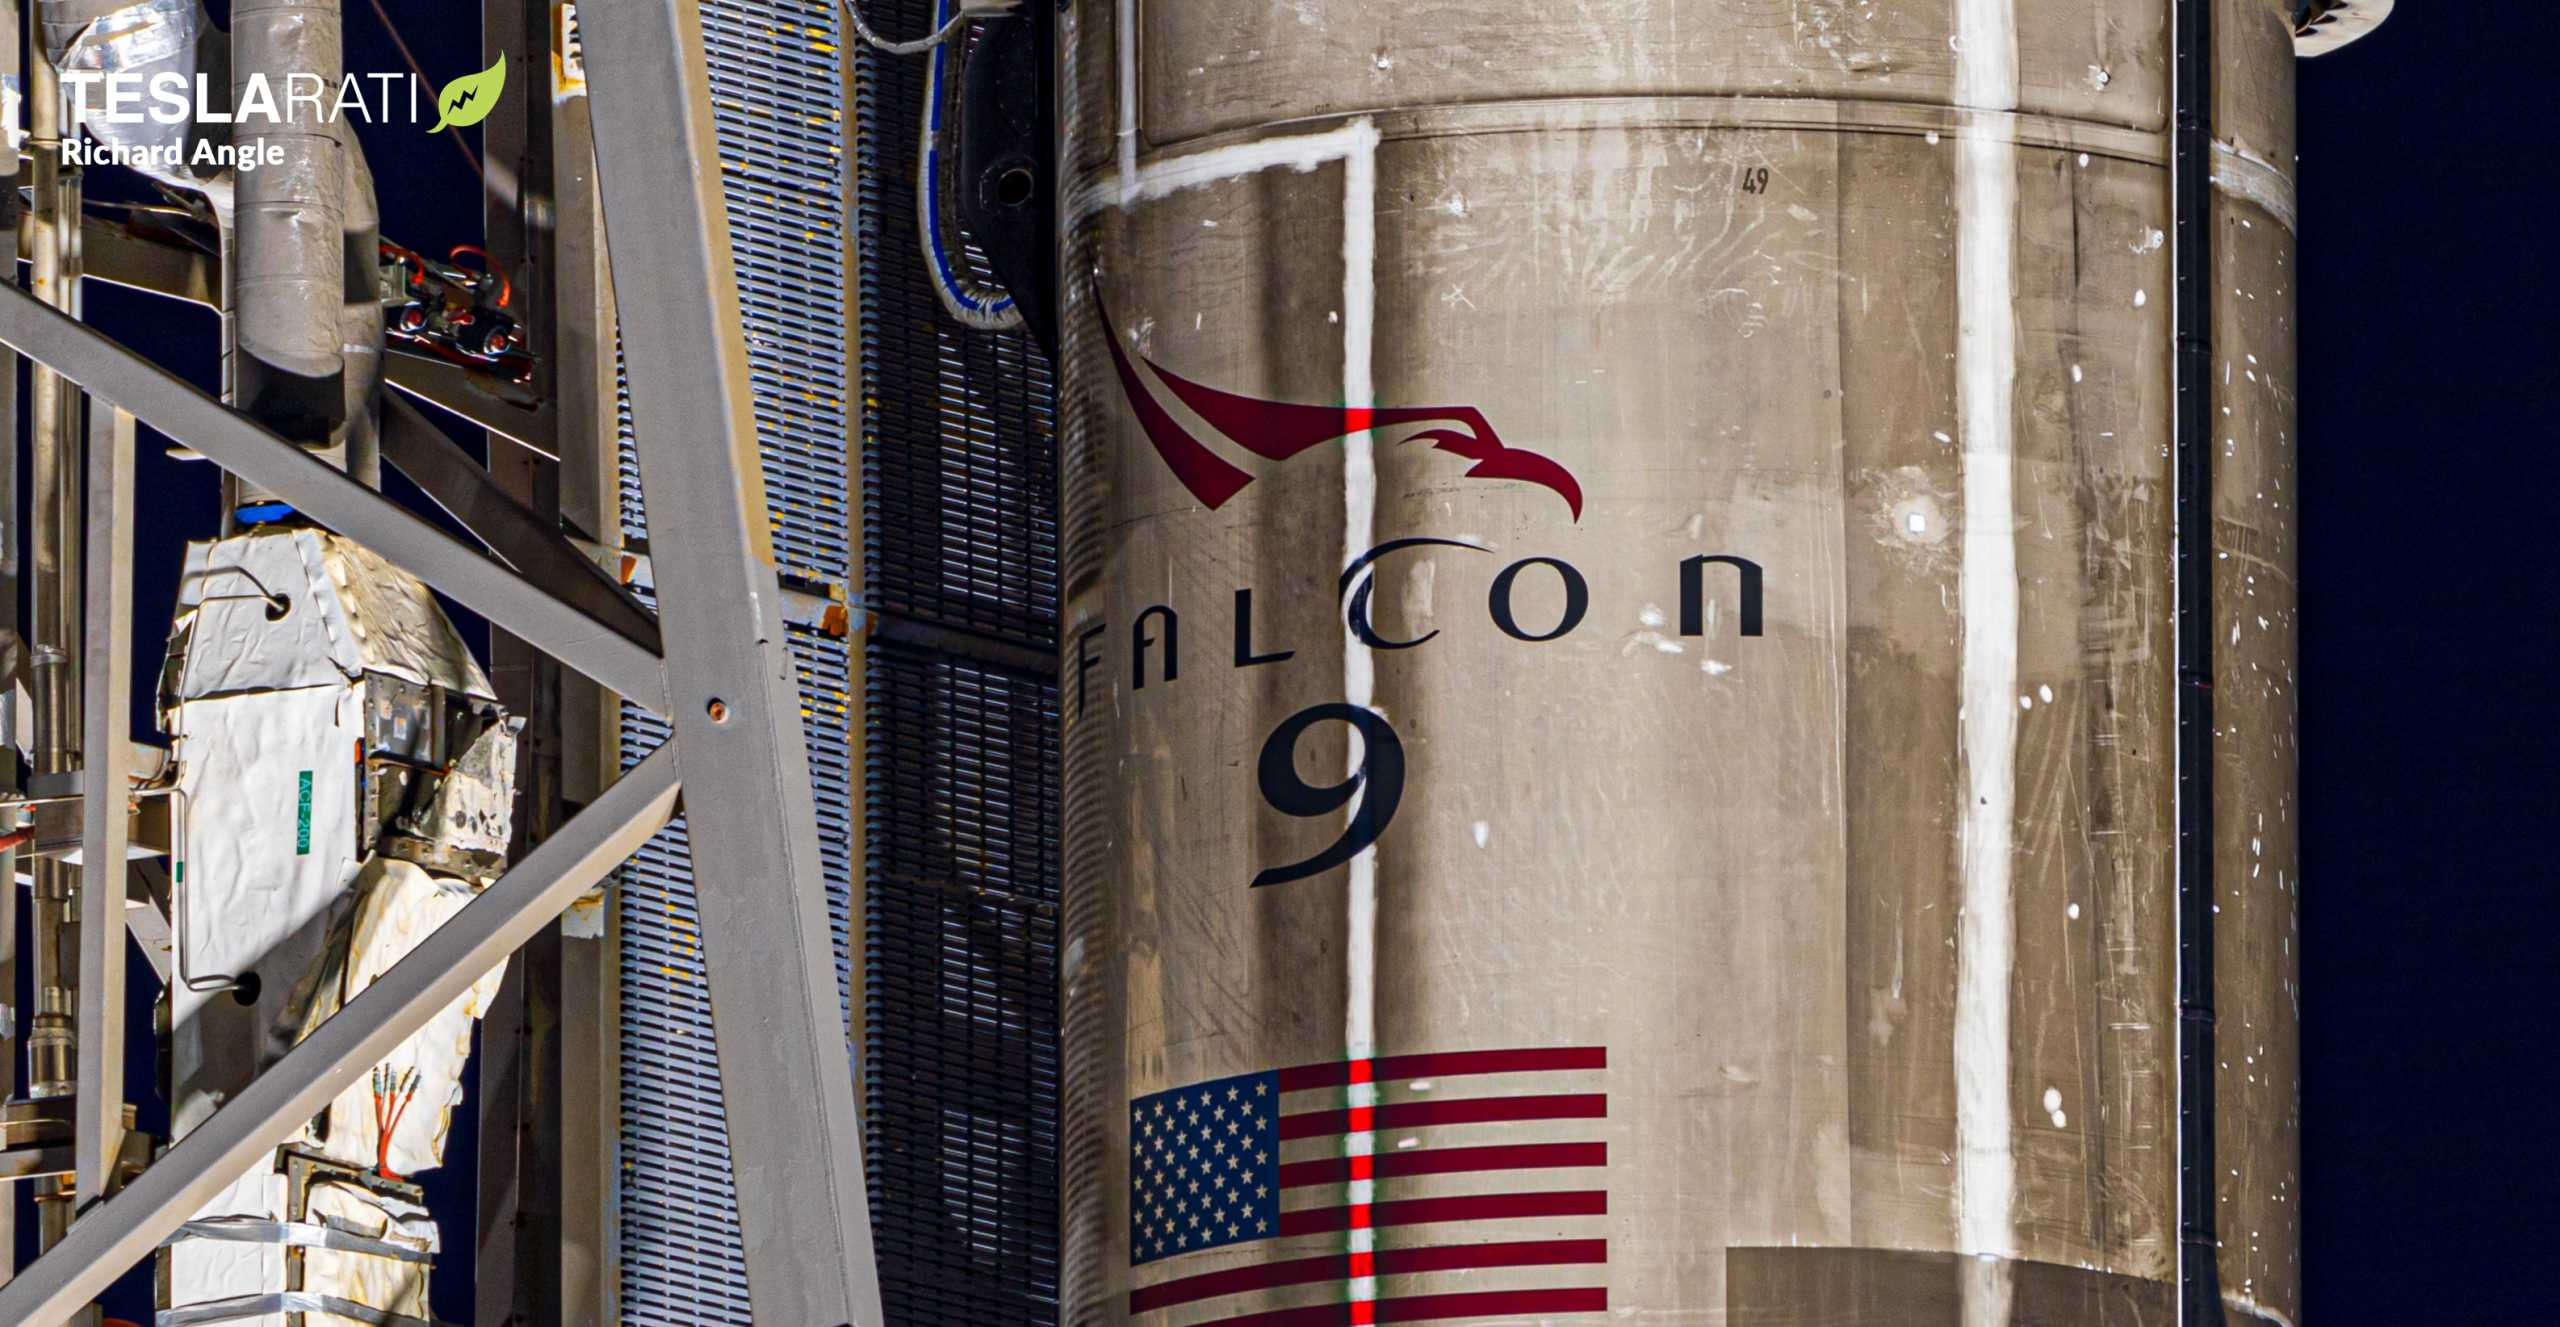 Starlink-10 SkySat Falcon 9 B1049 081820 (Richard Angle) prelaunch 1 crop (c)